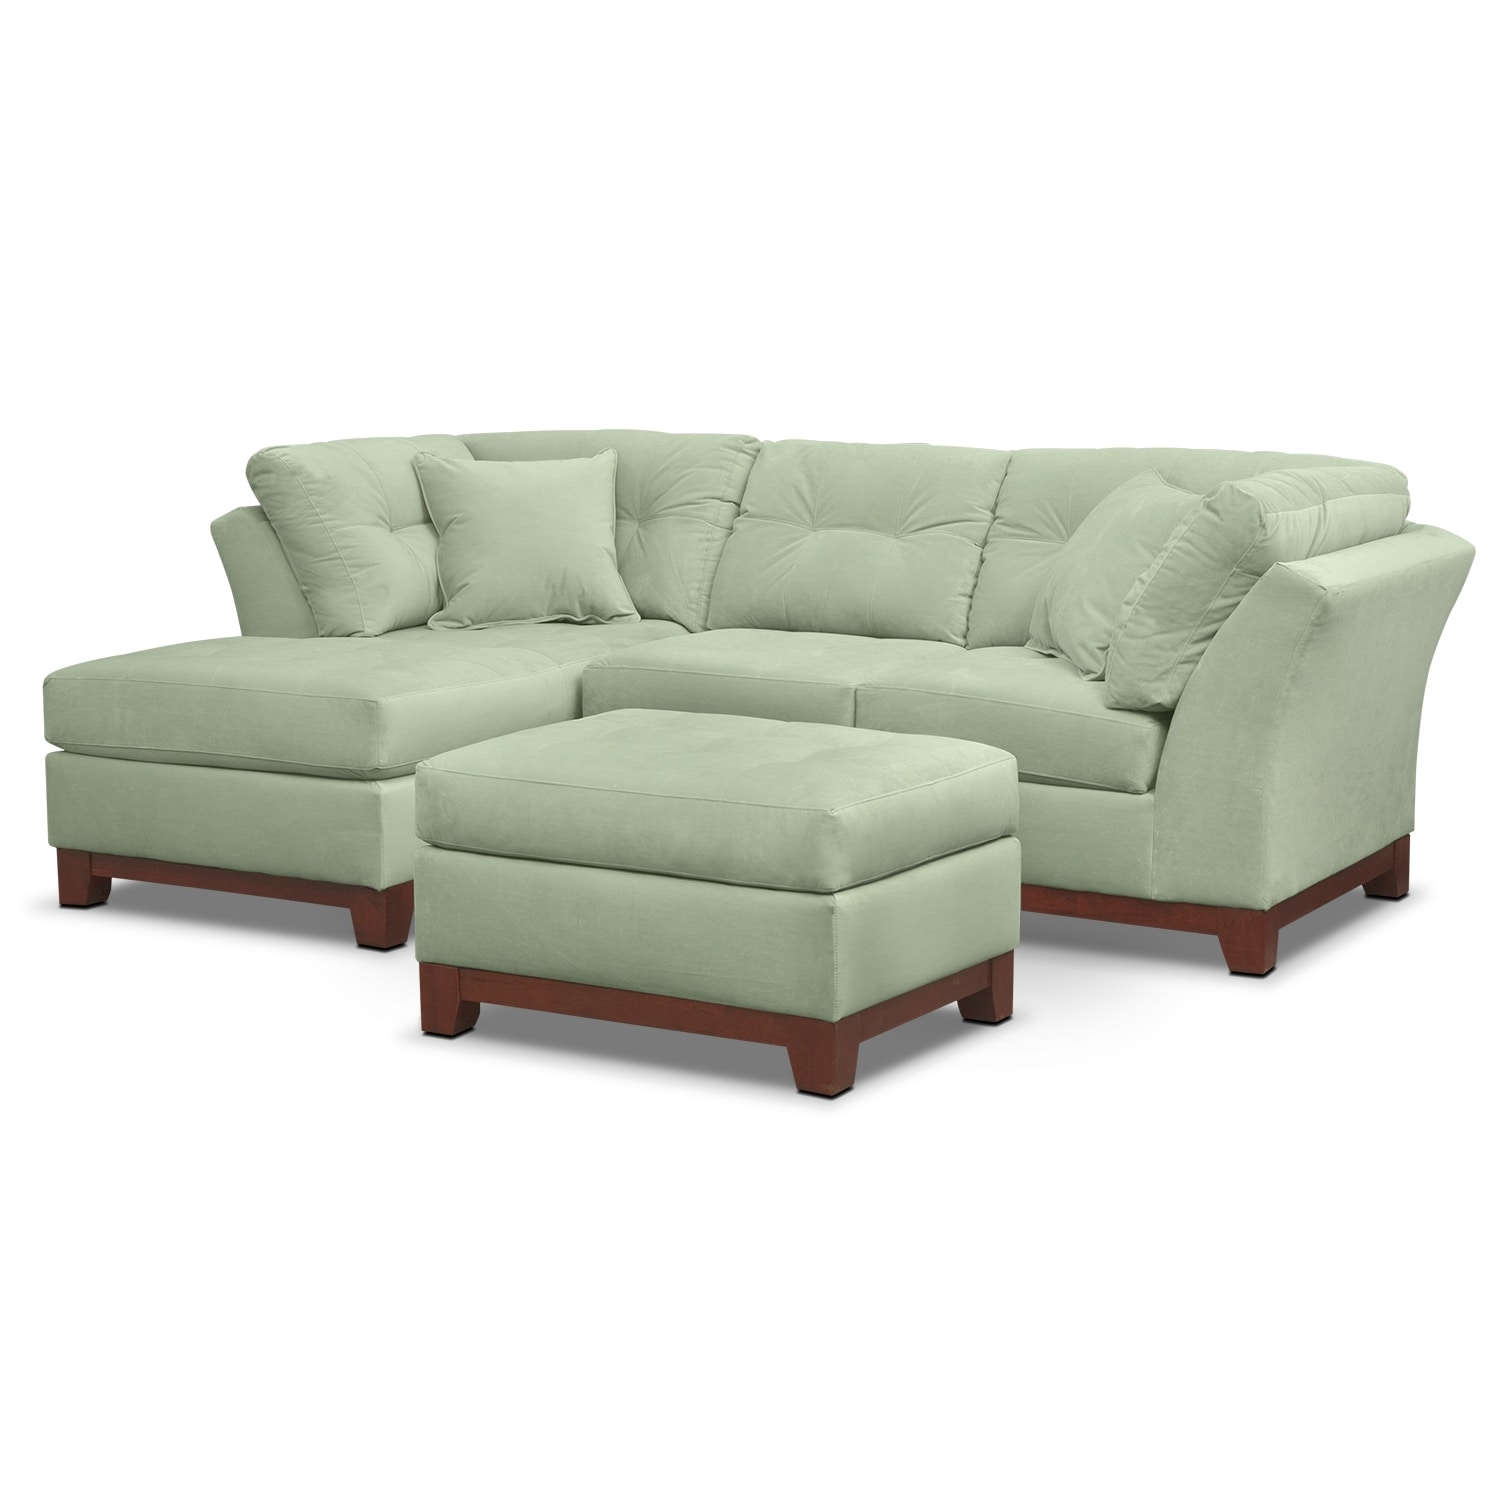 Living Room Furniture - Solace Spa II 2 Pc. Sectional (Alternate) and Ottoman